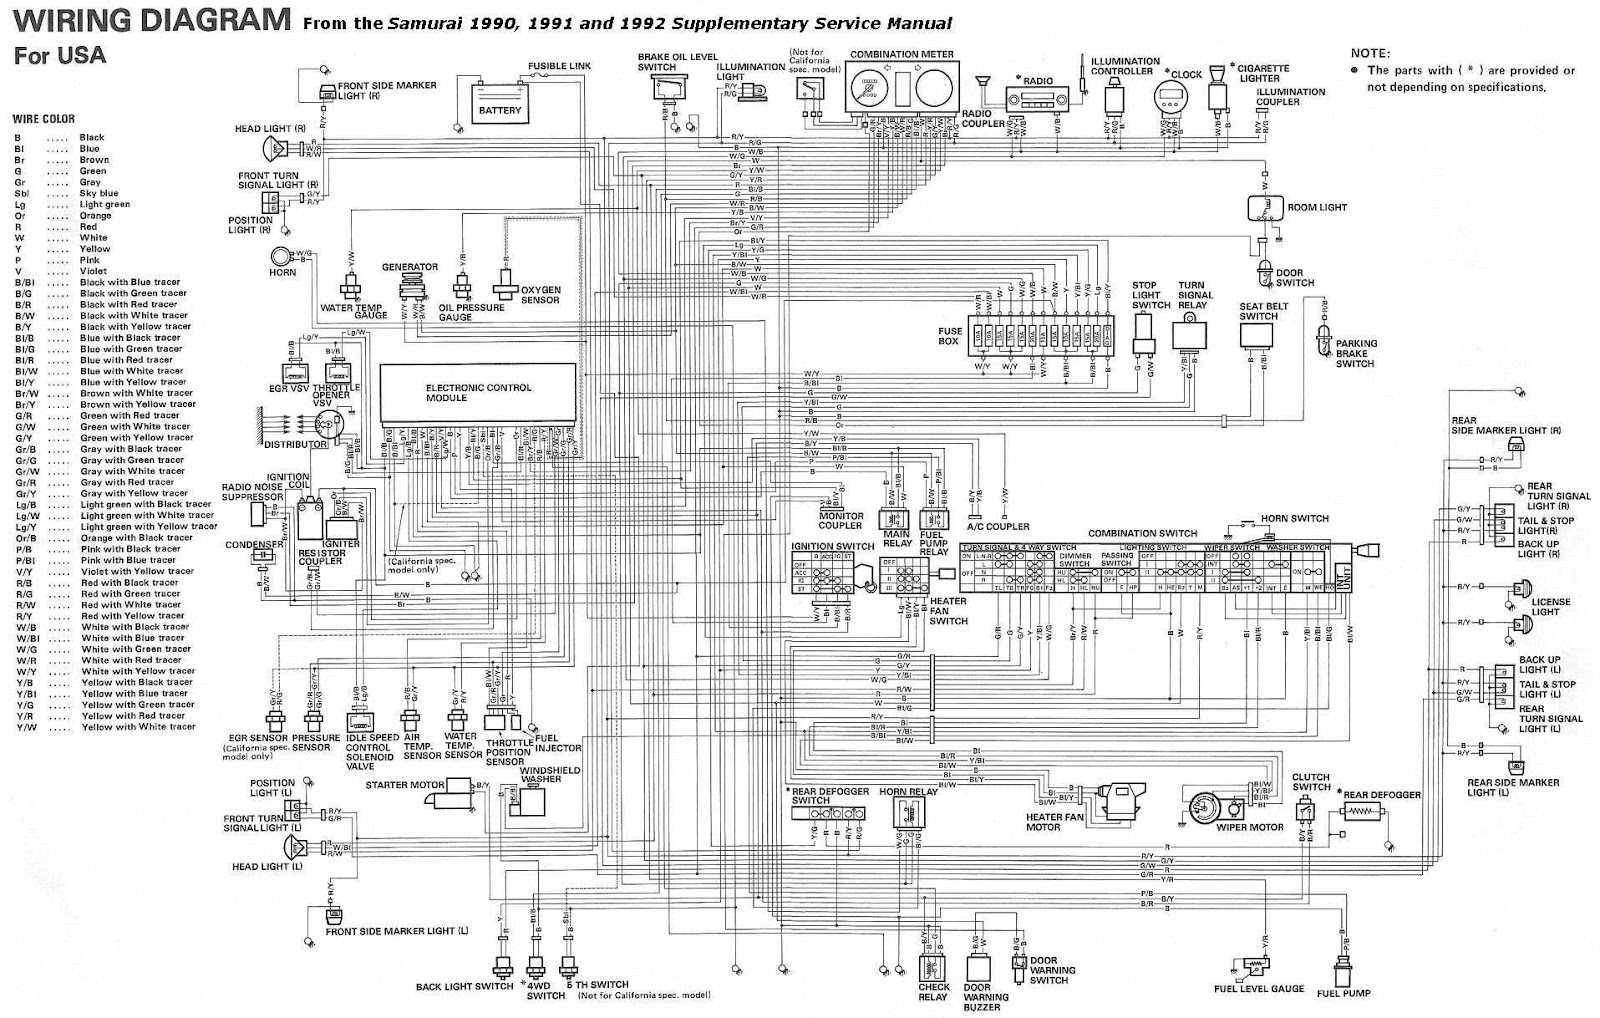 Suzuki+Samurai+1990 1992+Complete+Electrical+Wiring+Diagram+(USA)?resized665%2C423 suzuki vitara wiring schematic efcaviation com suzuki samurai wiring diagram at pacquiaovsvargaslive.co